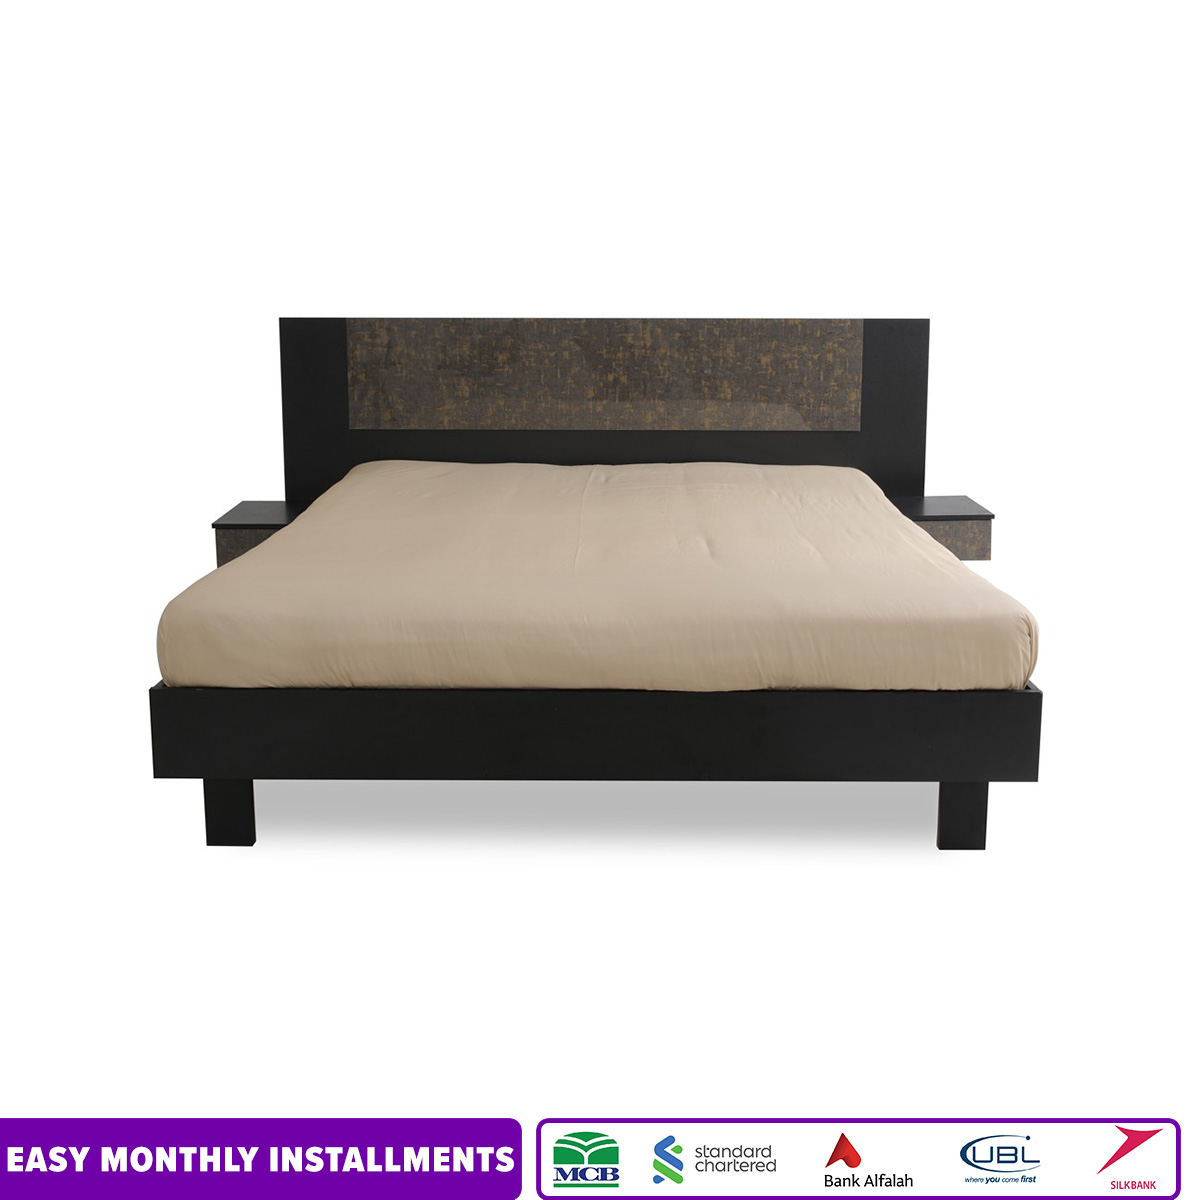 Habitt - Novak Bed with 2 attached drawers - King Sized Black Laminated Bed - (KHI-LHR-ISB Delivery Only)